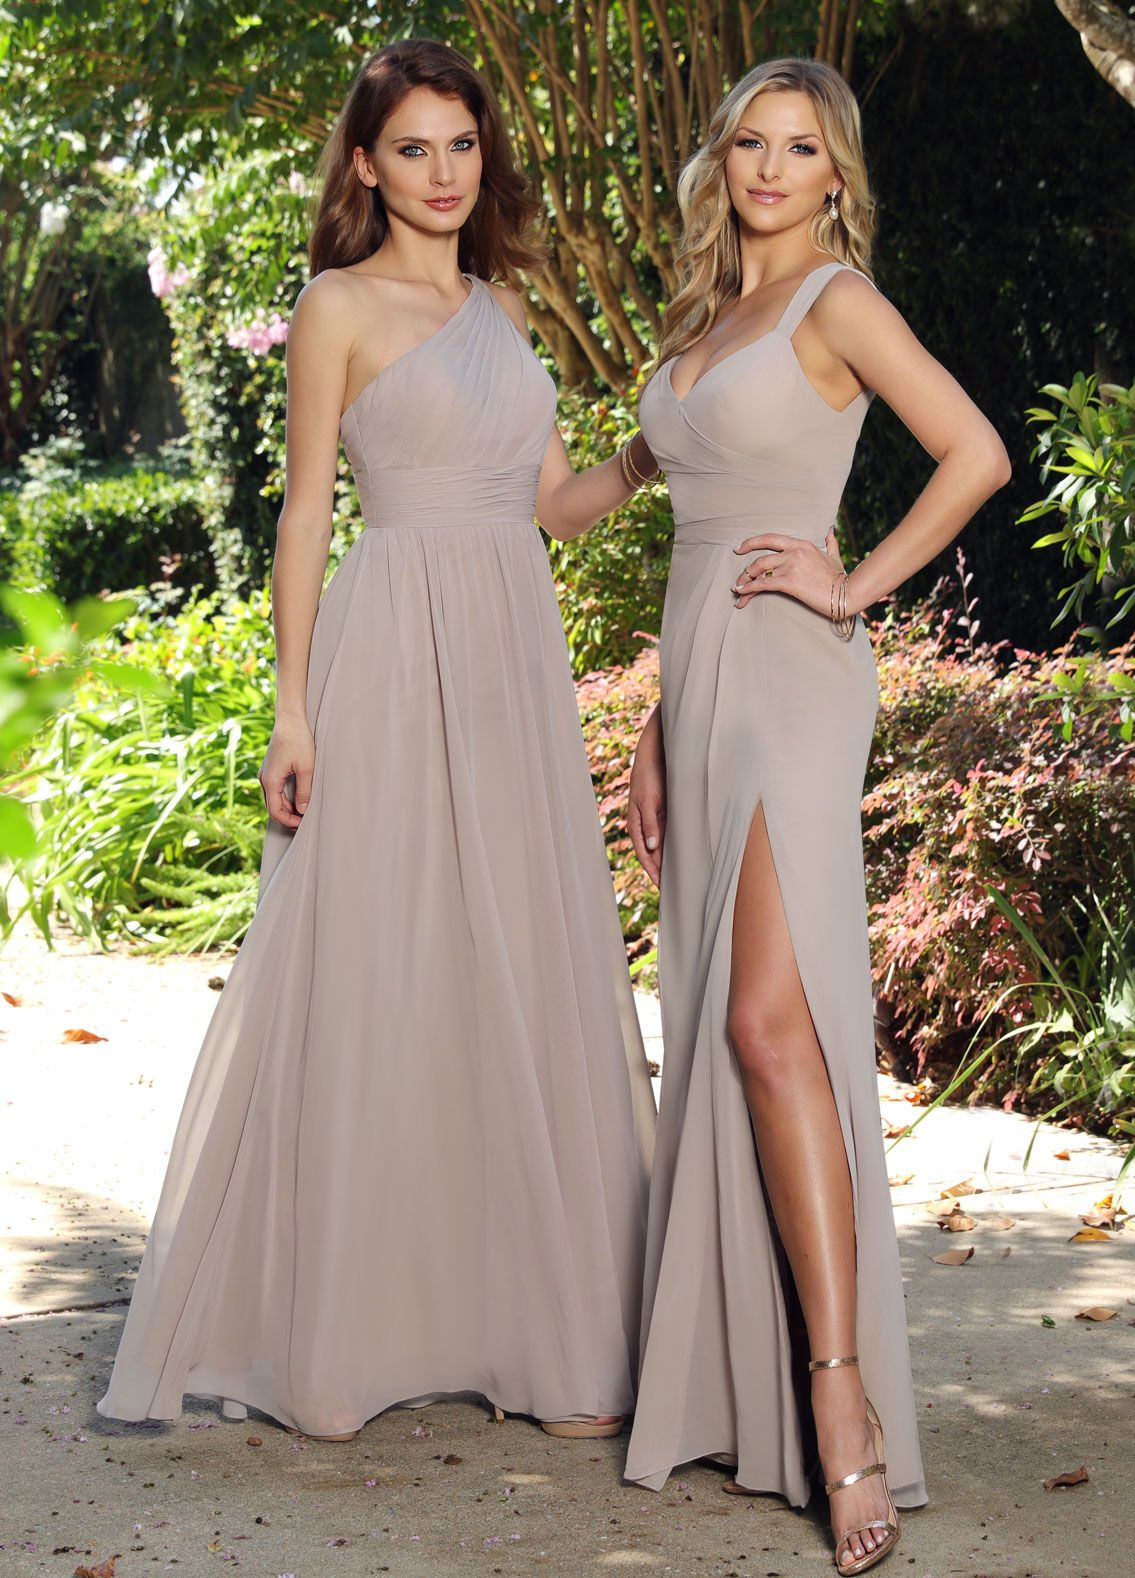 Left 20255 impression bridesmaids bridesmaid dresses at impression bridal store find your dream bridal gown wedding dress bridesmaid dresses flowergirl dress and prom dress all at amazingly affordable ombrellifo Gallery